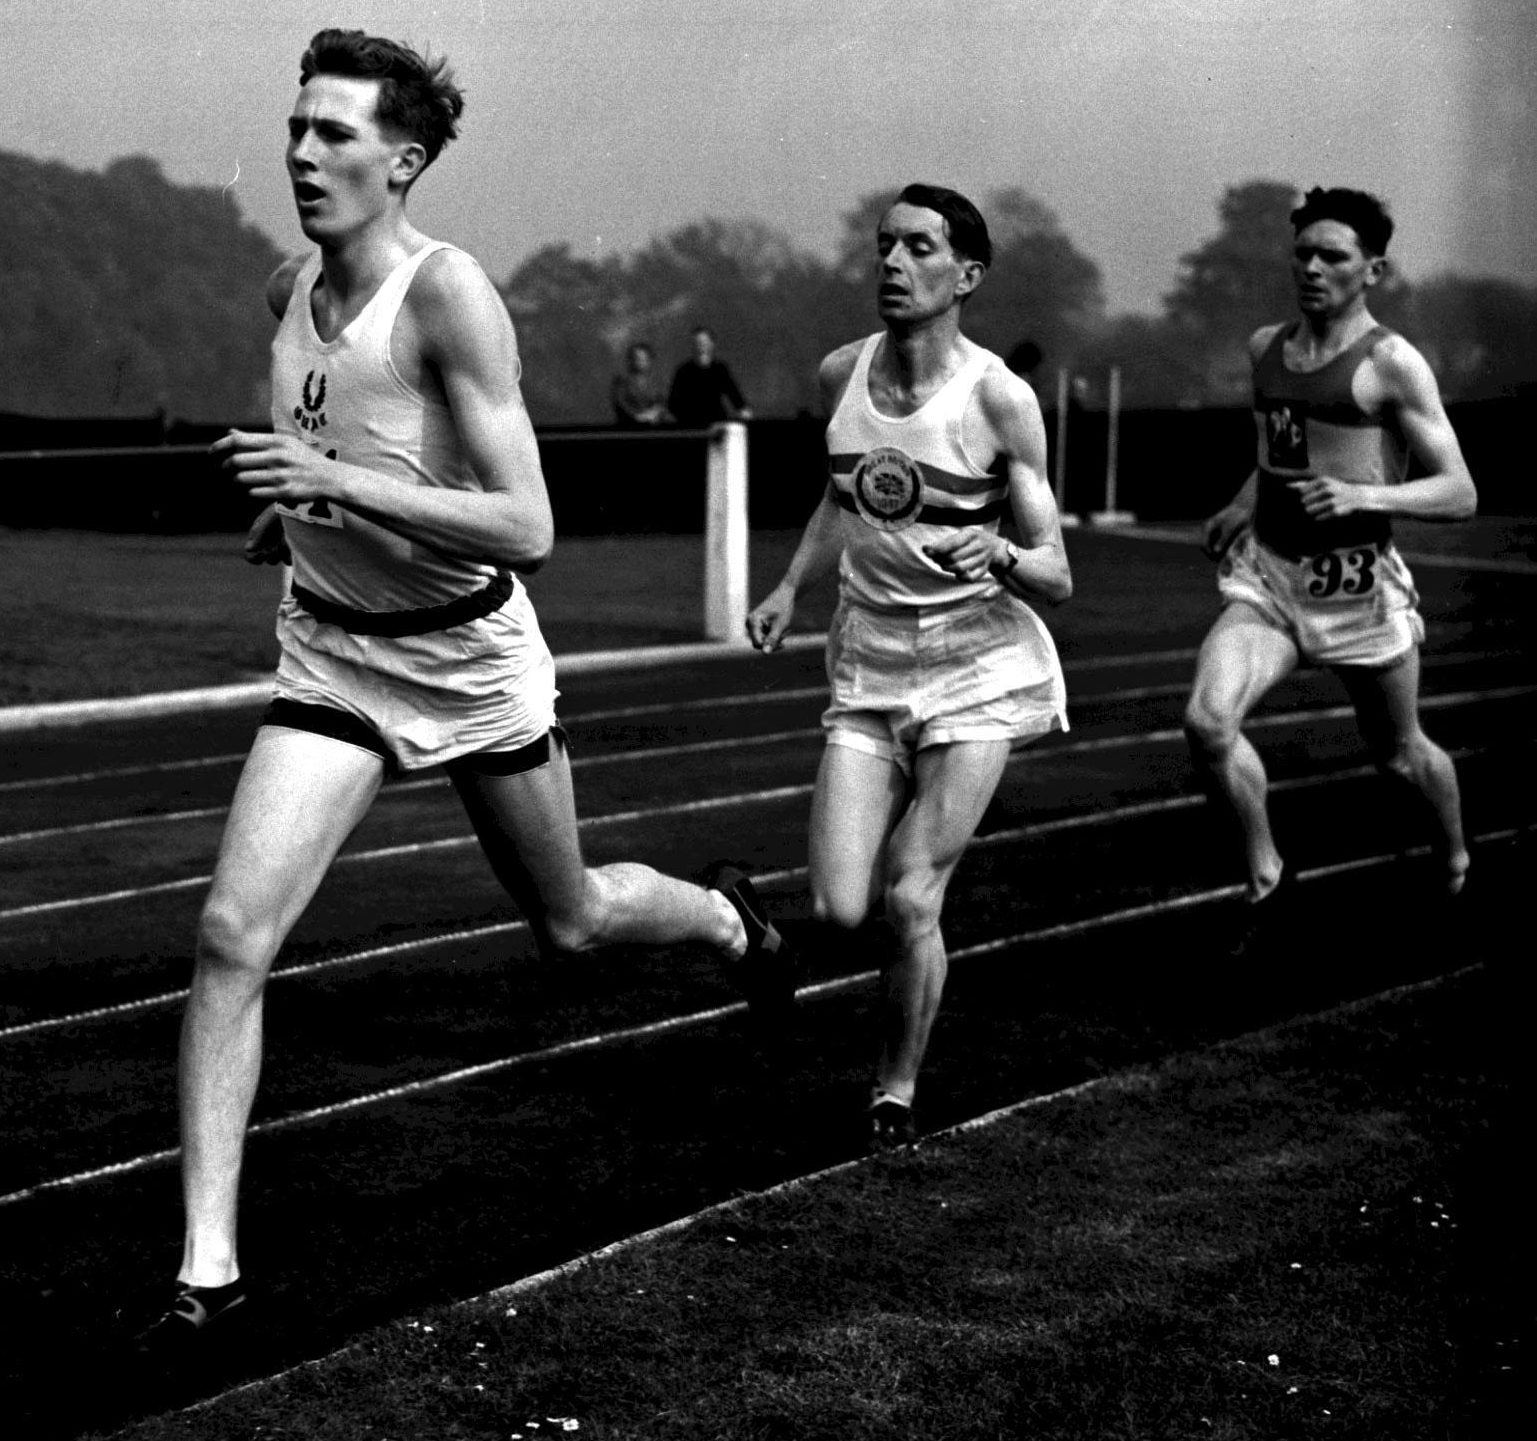 Bannister retired later in 1954 but had raced his way into athletics folklore